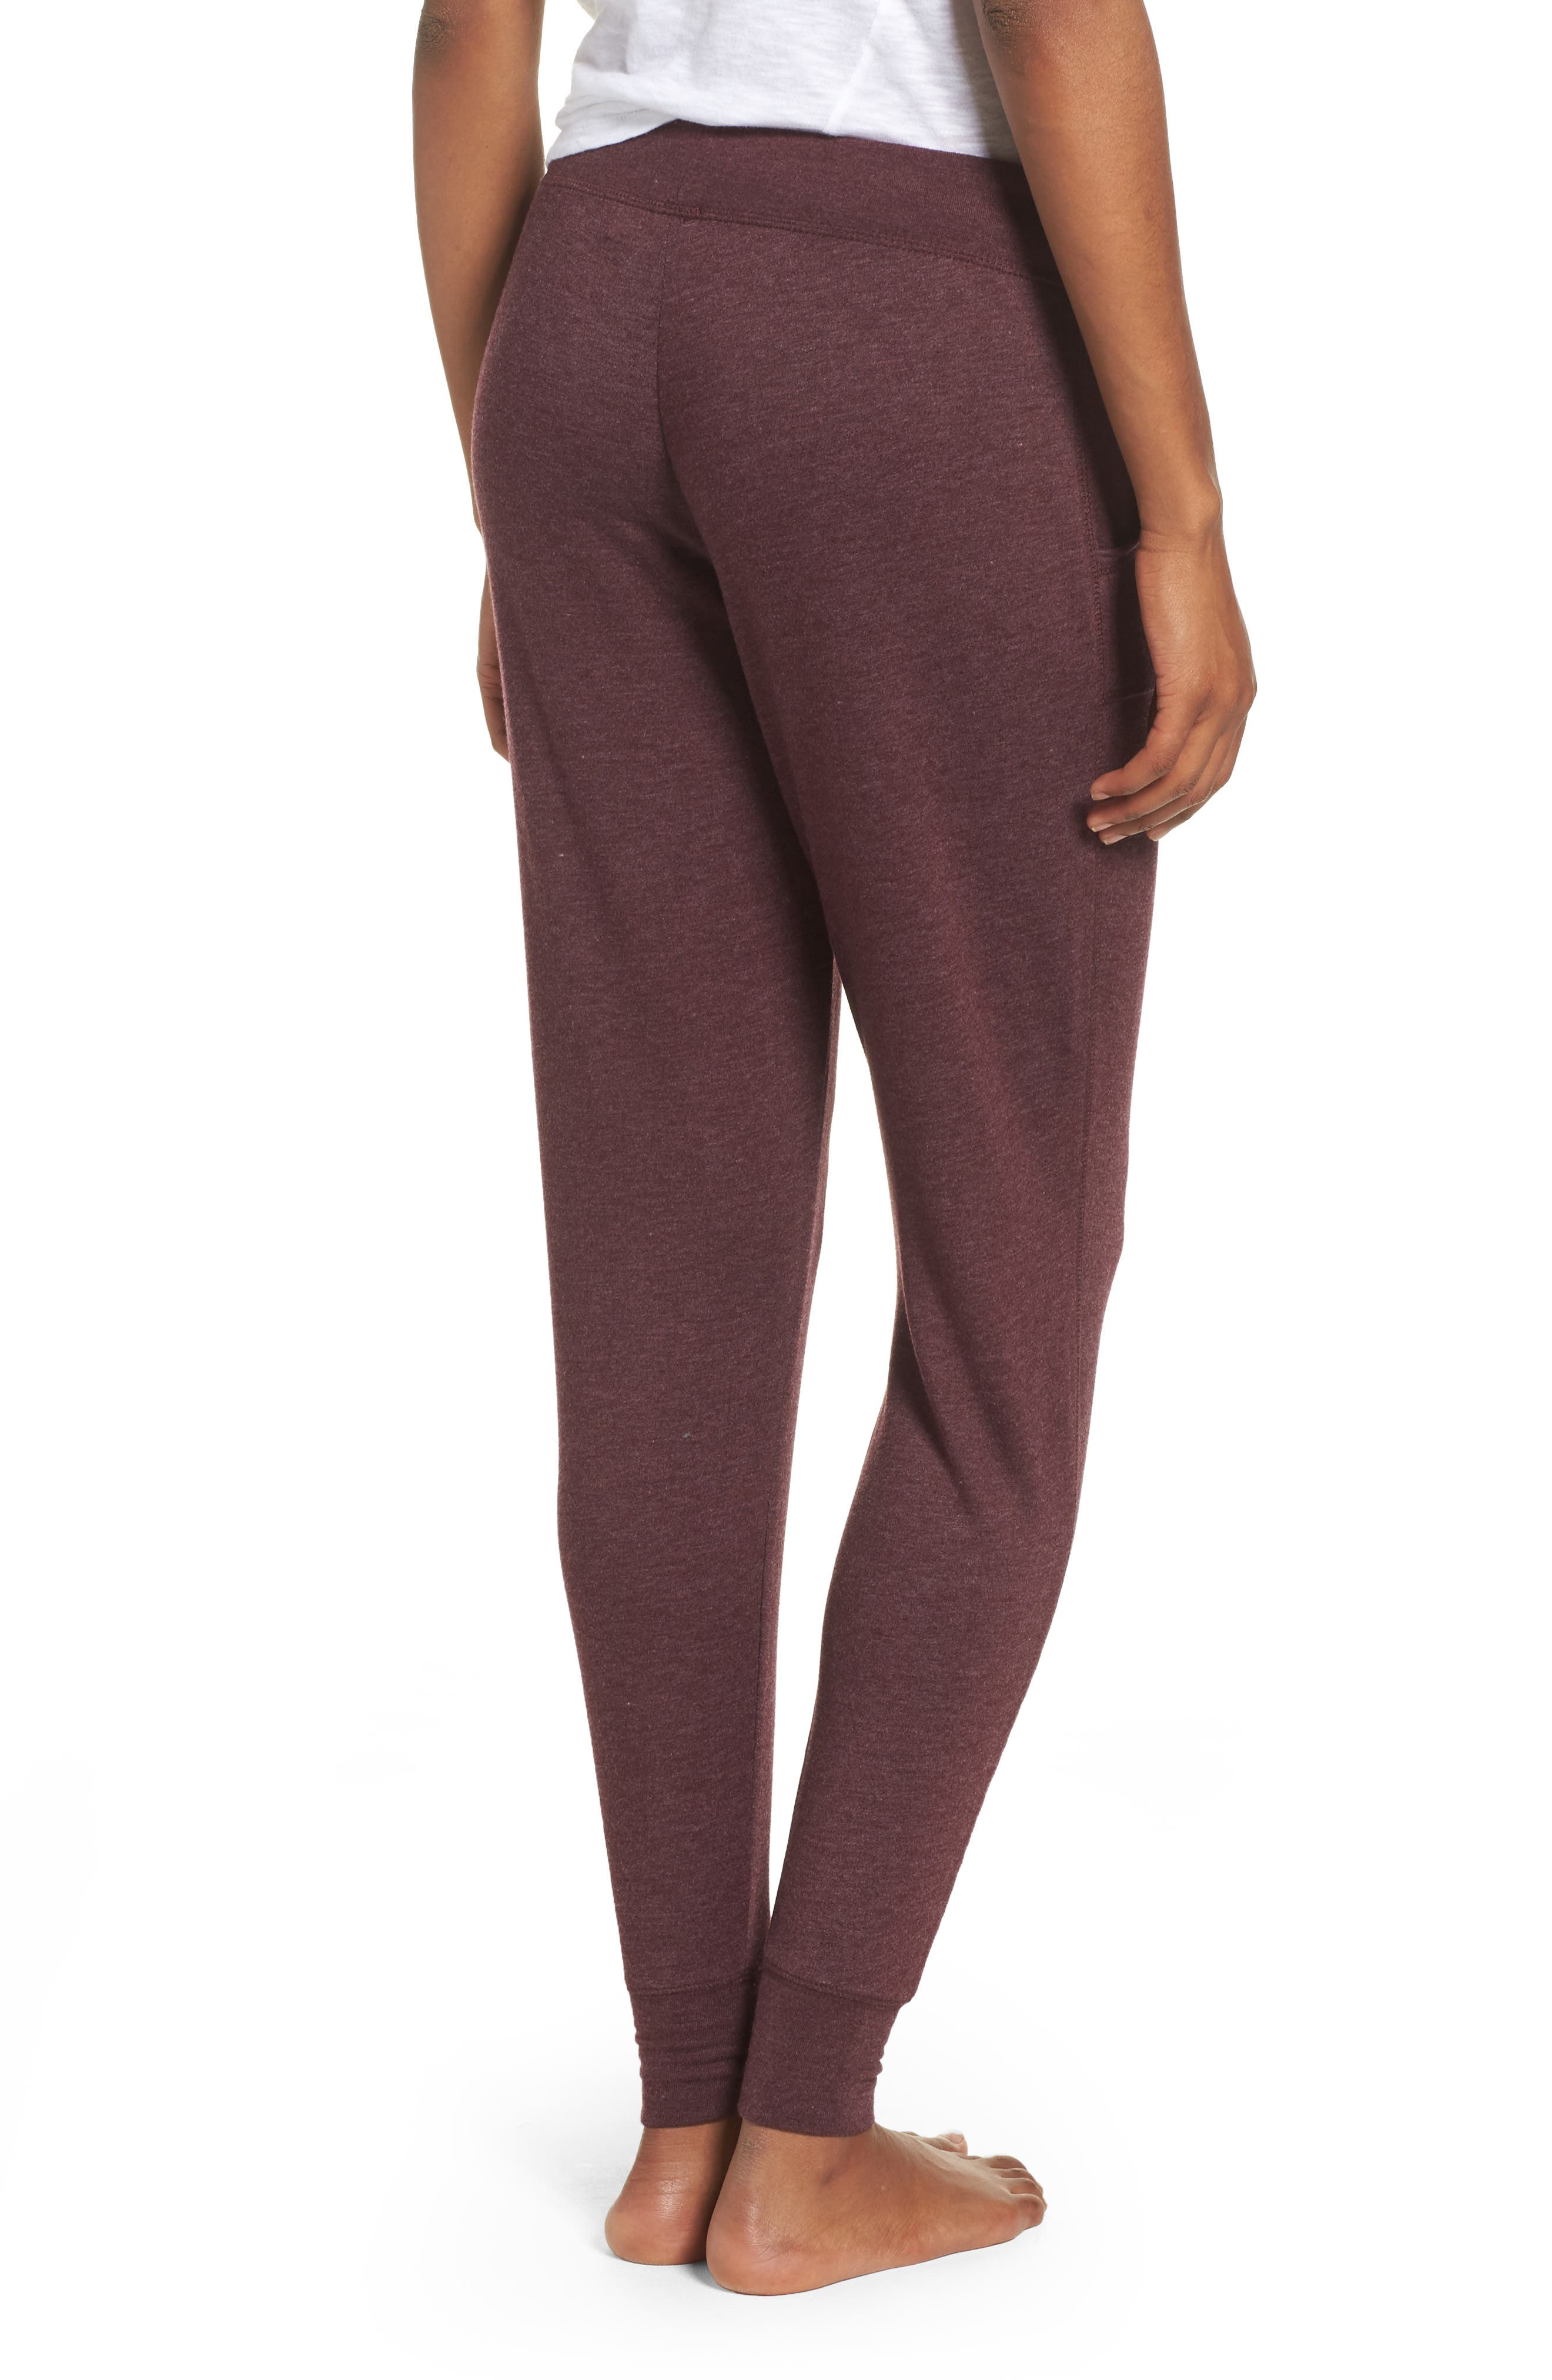 All About It Lounge Pants,                             Alternate thumbnail 11, color,